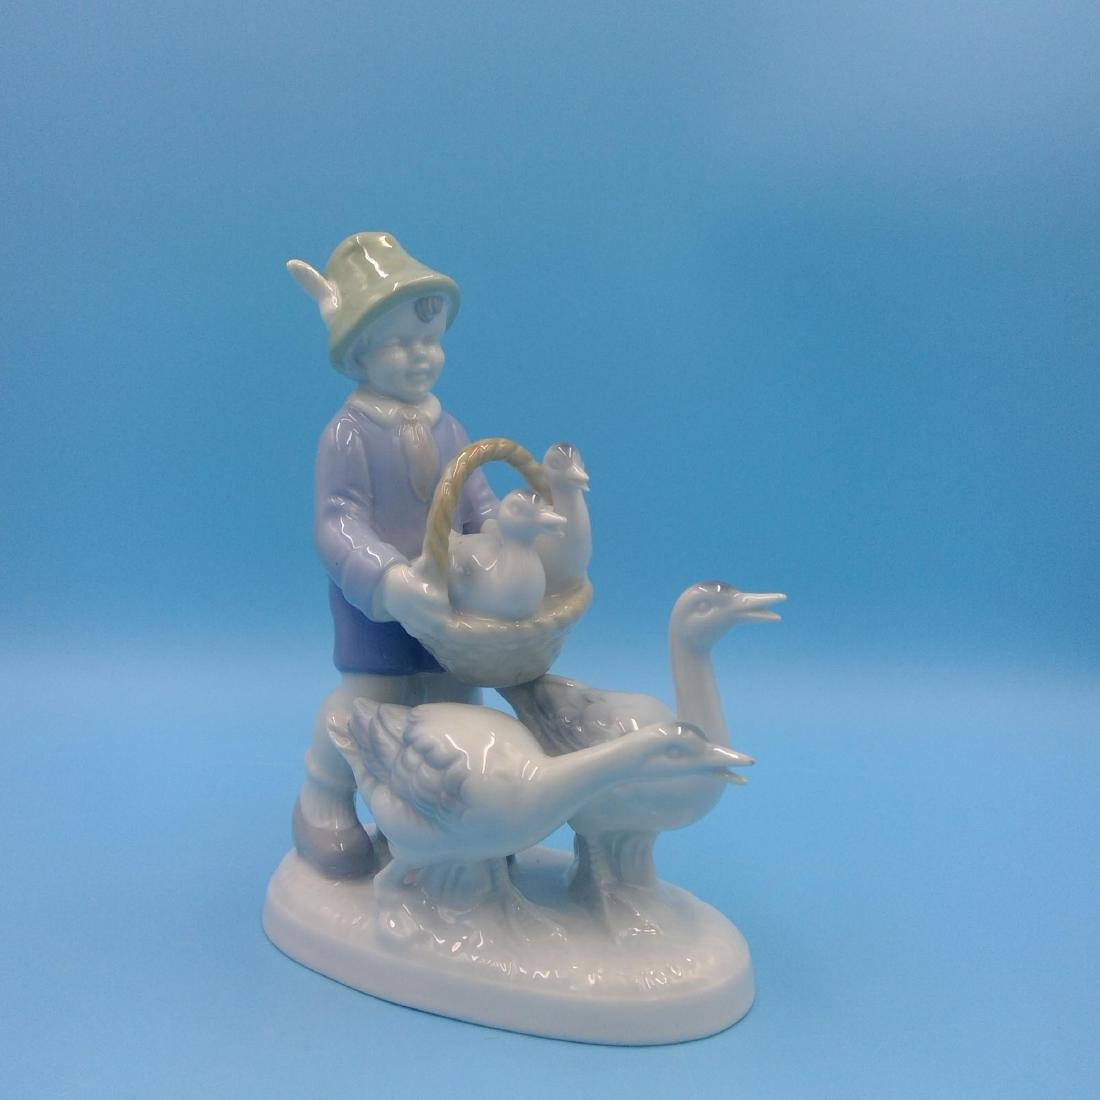 GROUP OF 7 GERMAN PORCELAIN FIGURINES - 7